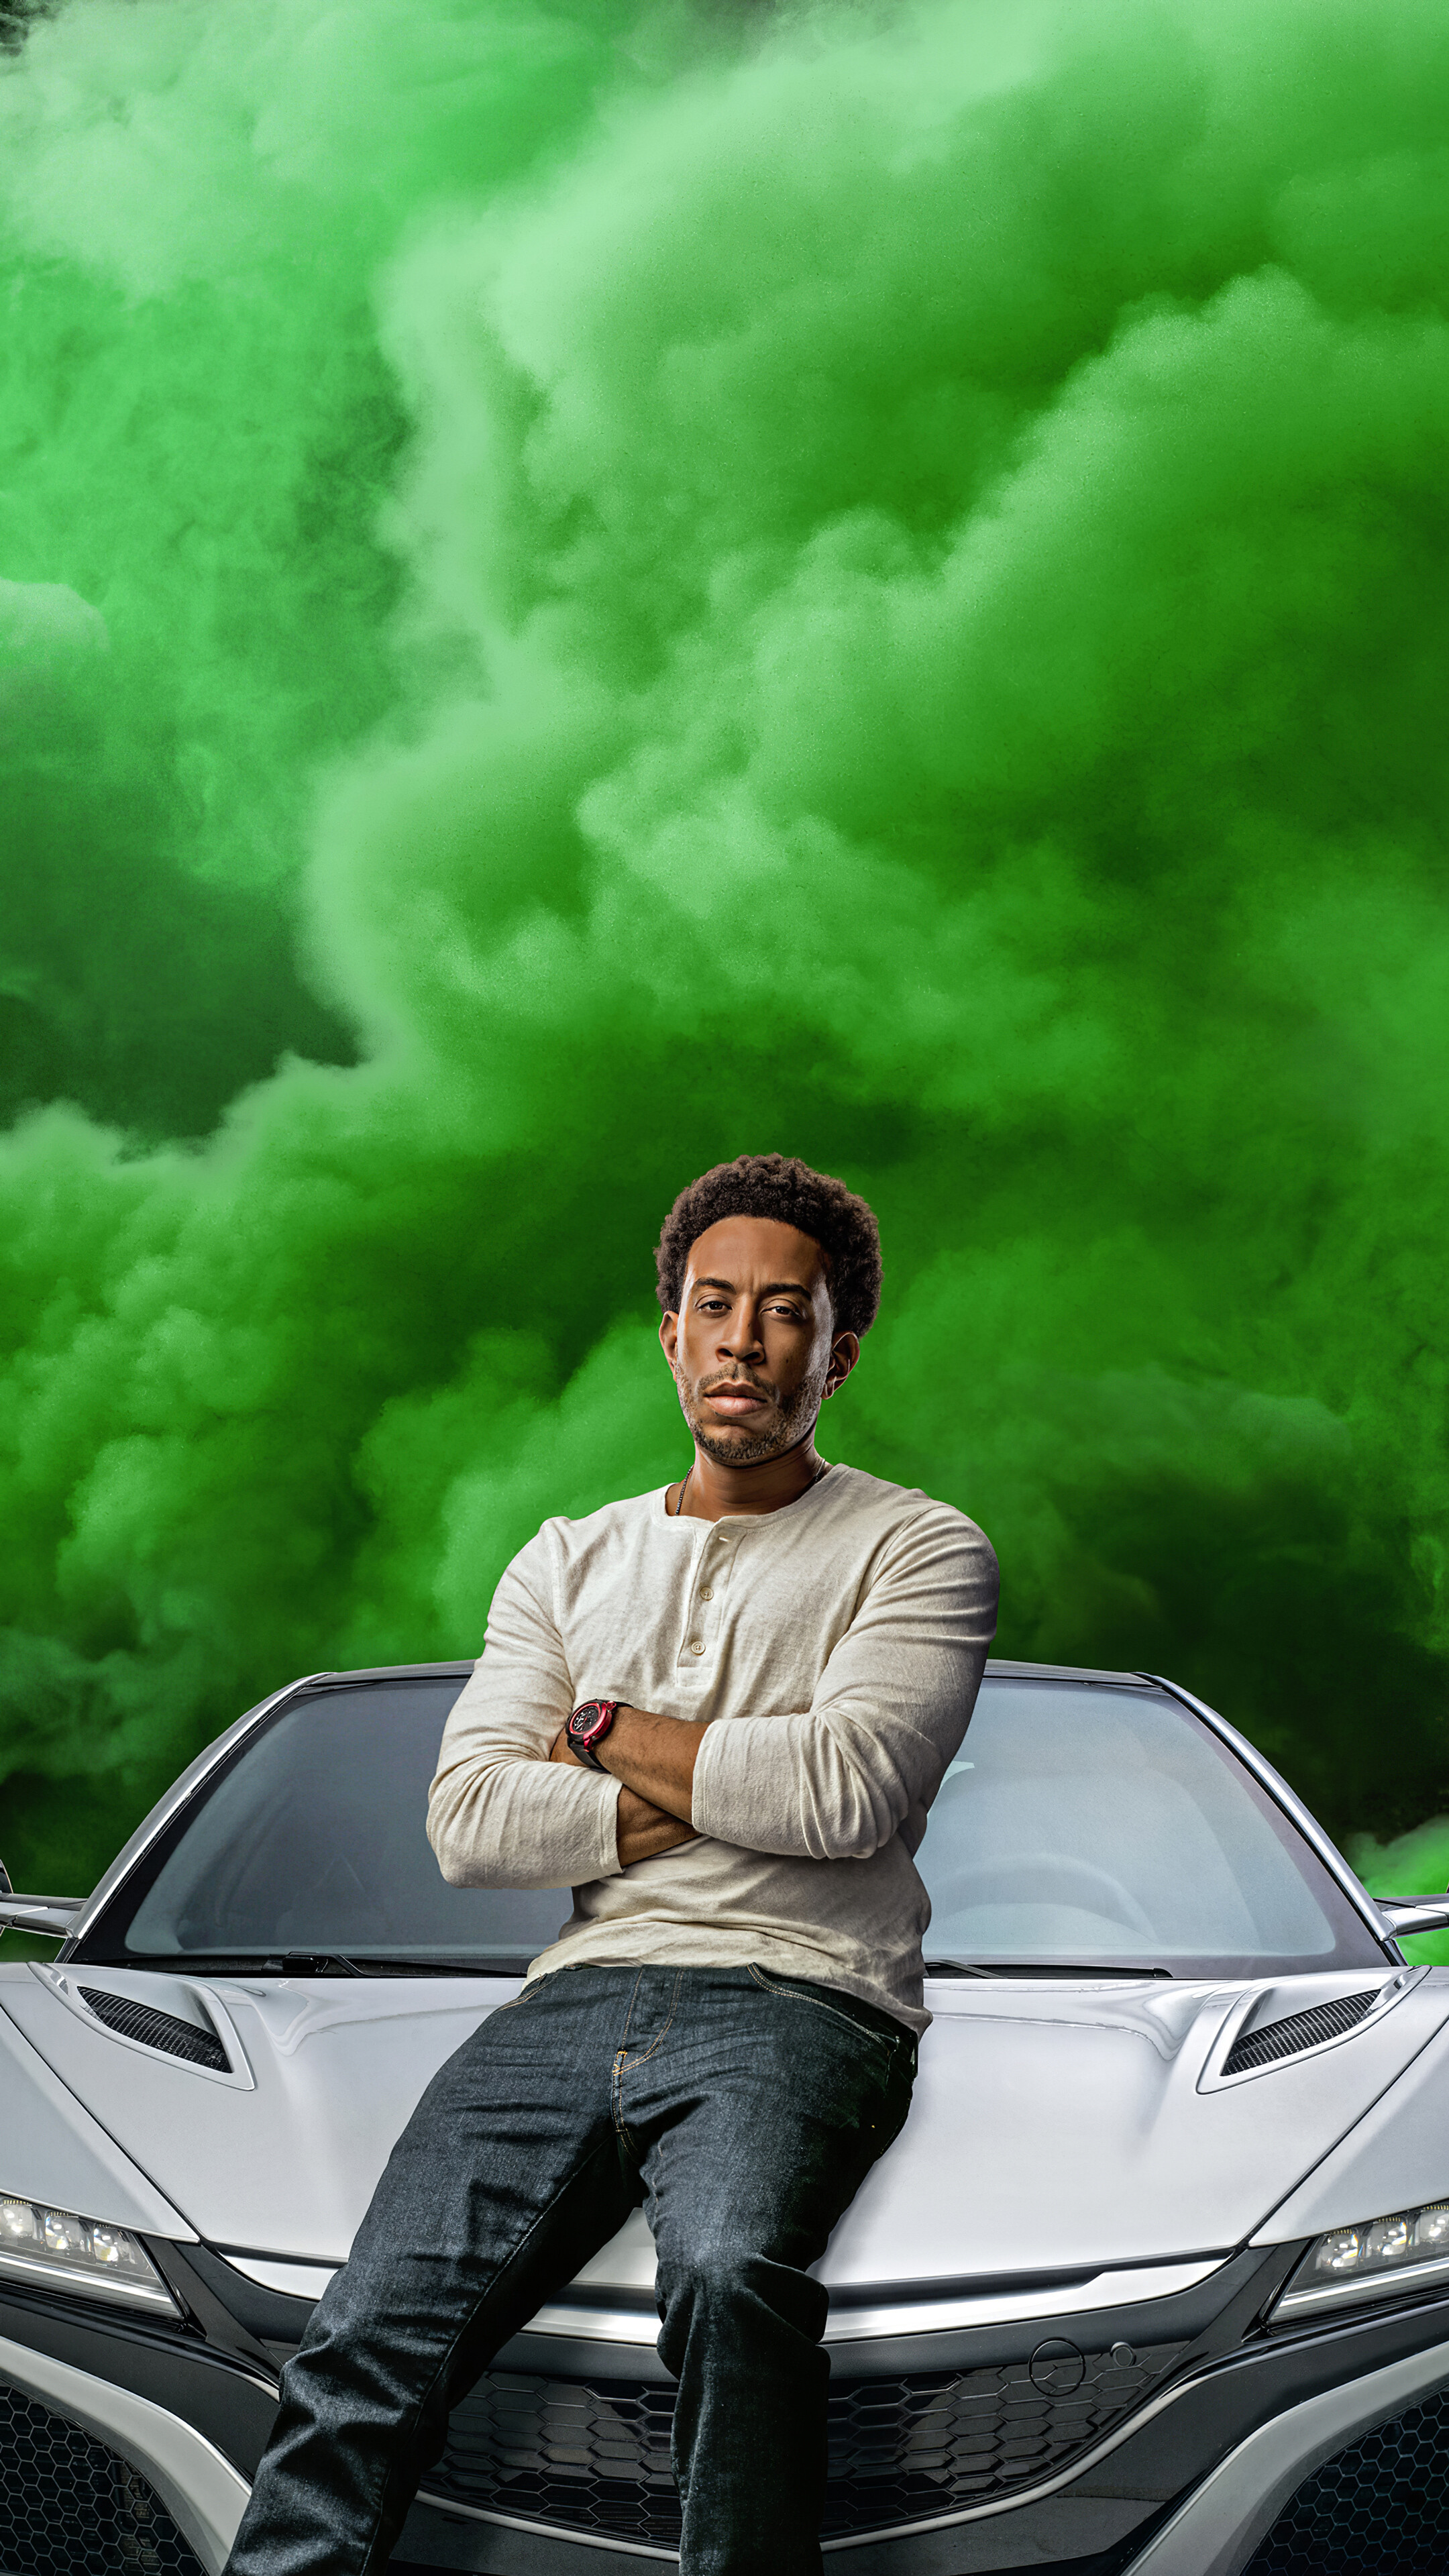 323099 Fast and Furious 9 Tej Parker Poster Ludacris 4K phone 2160x3840